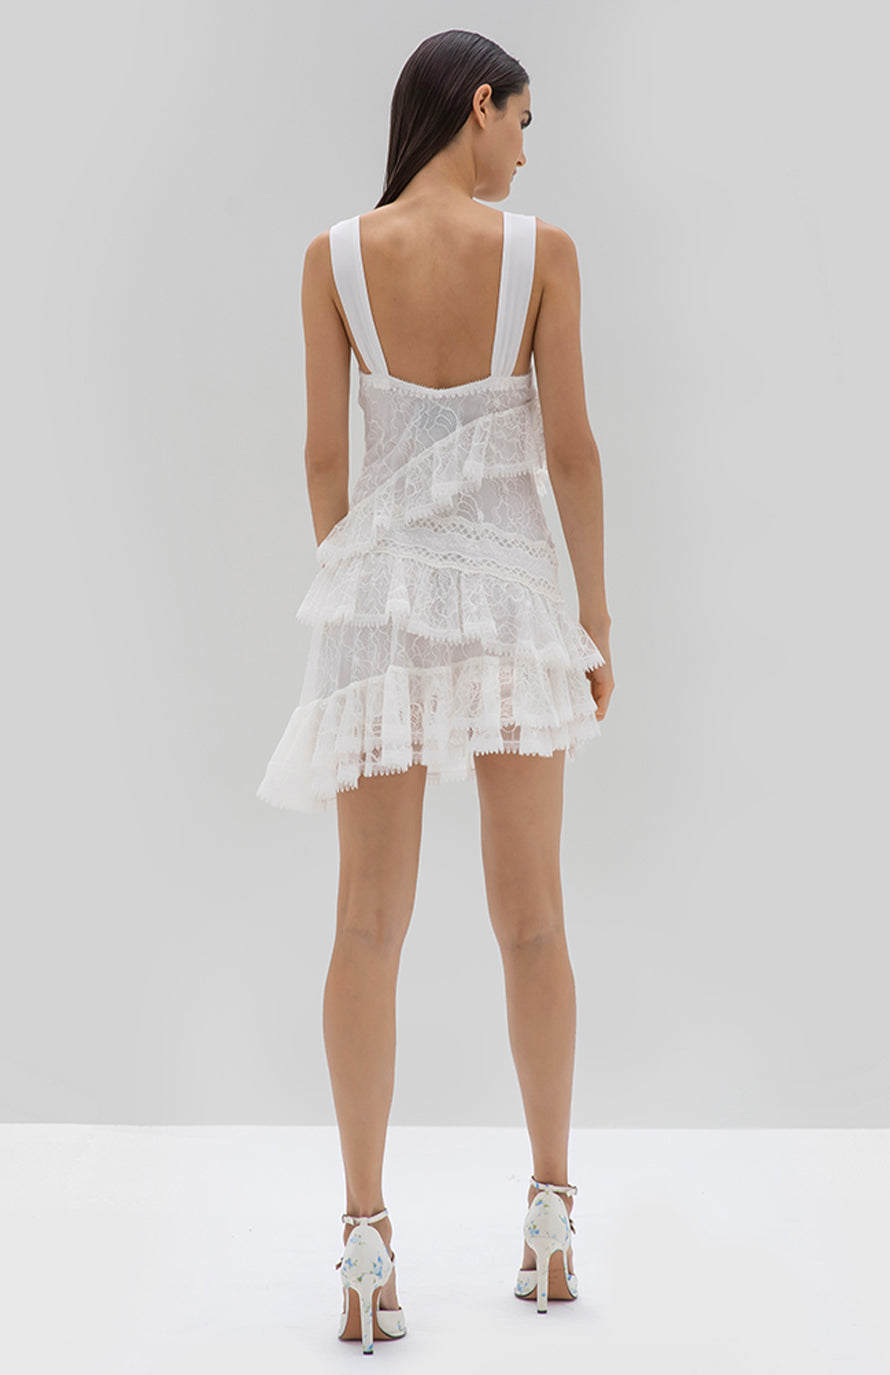 Alexis Ladonna Dress white - Rear View